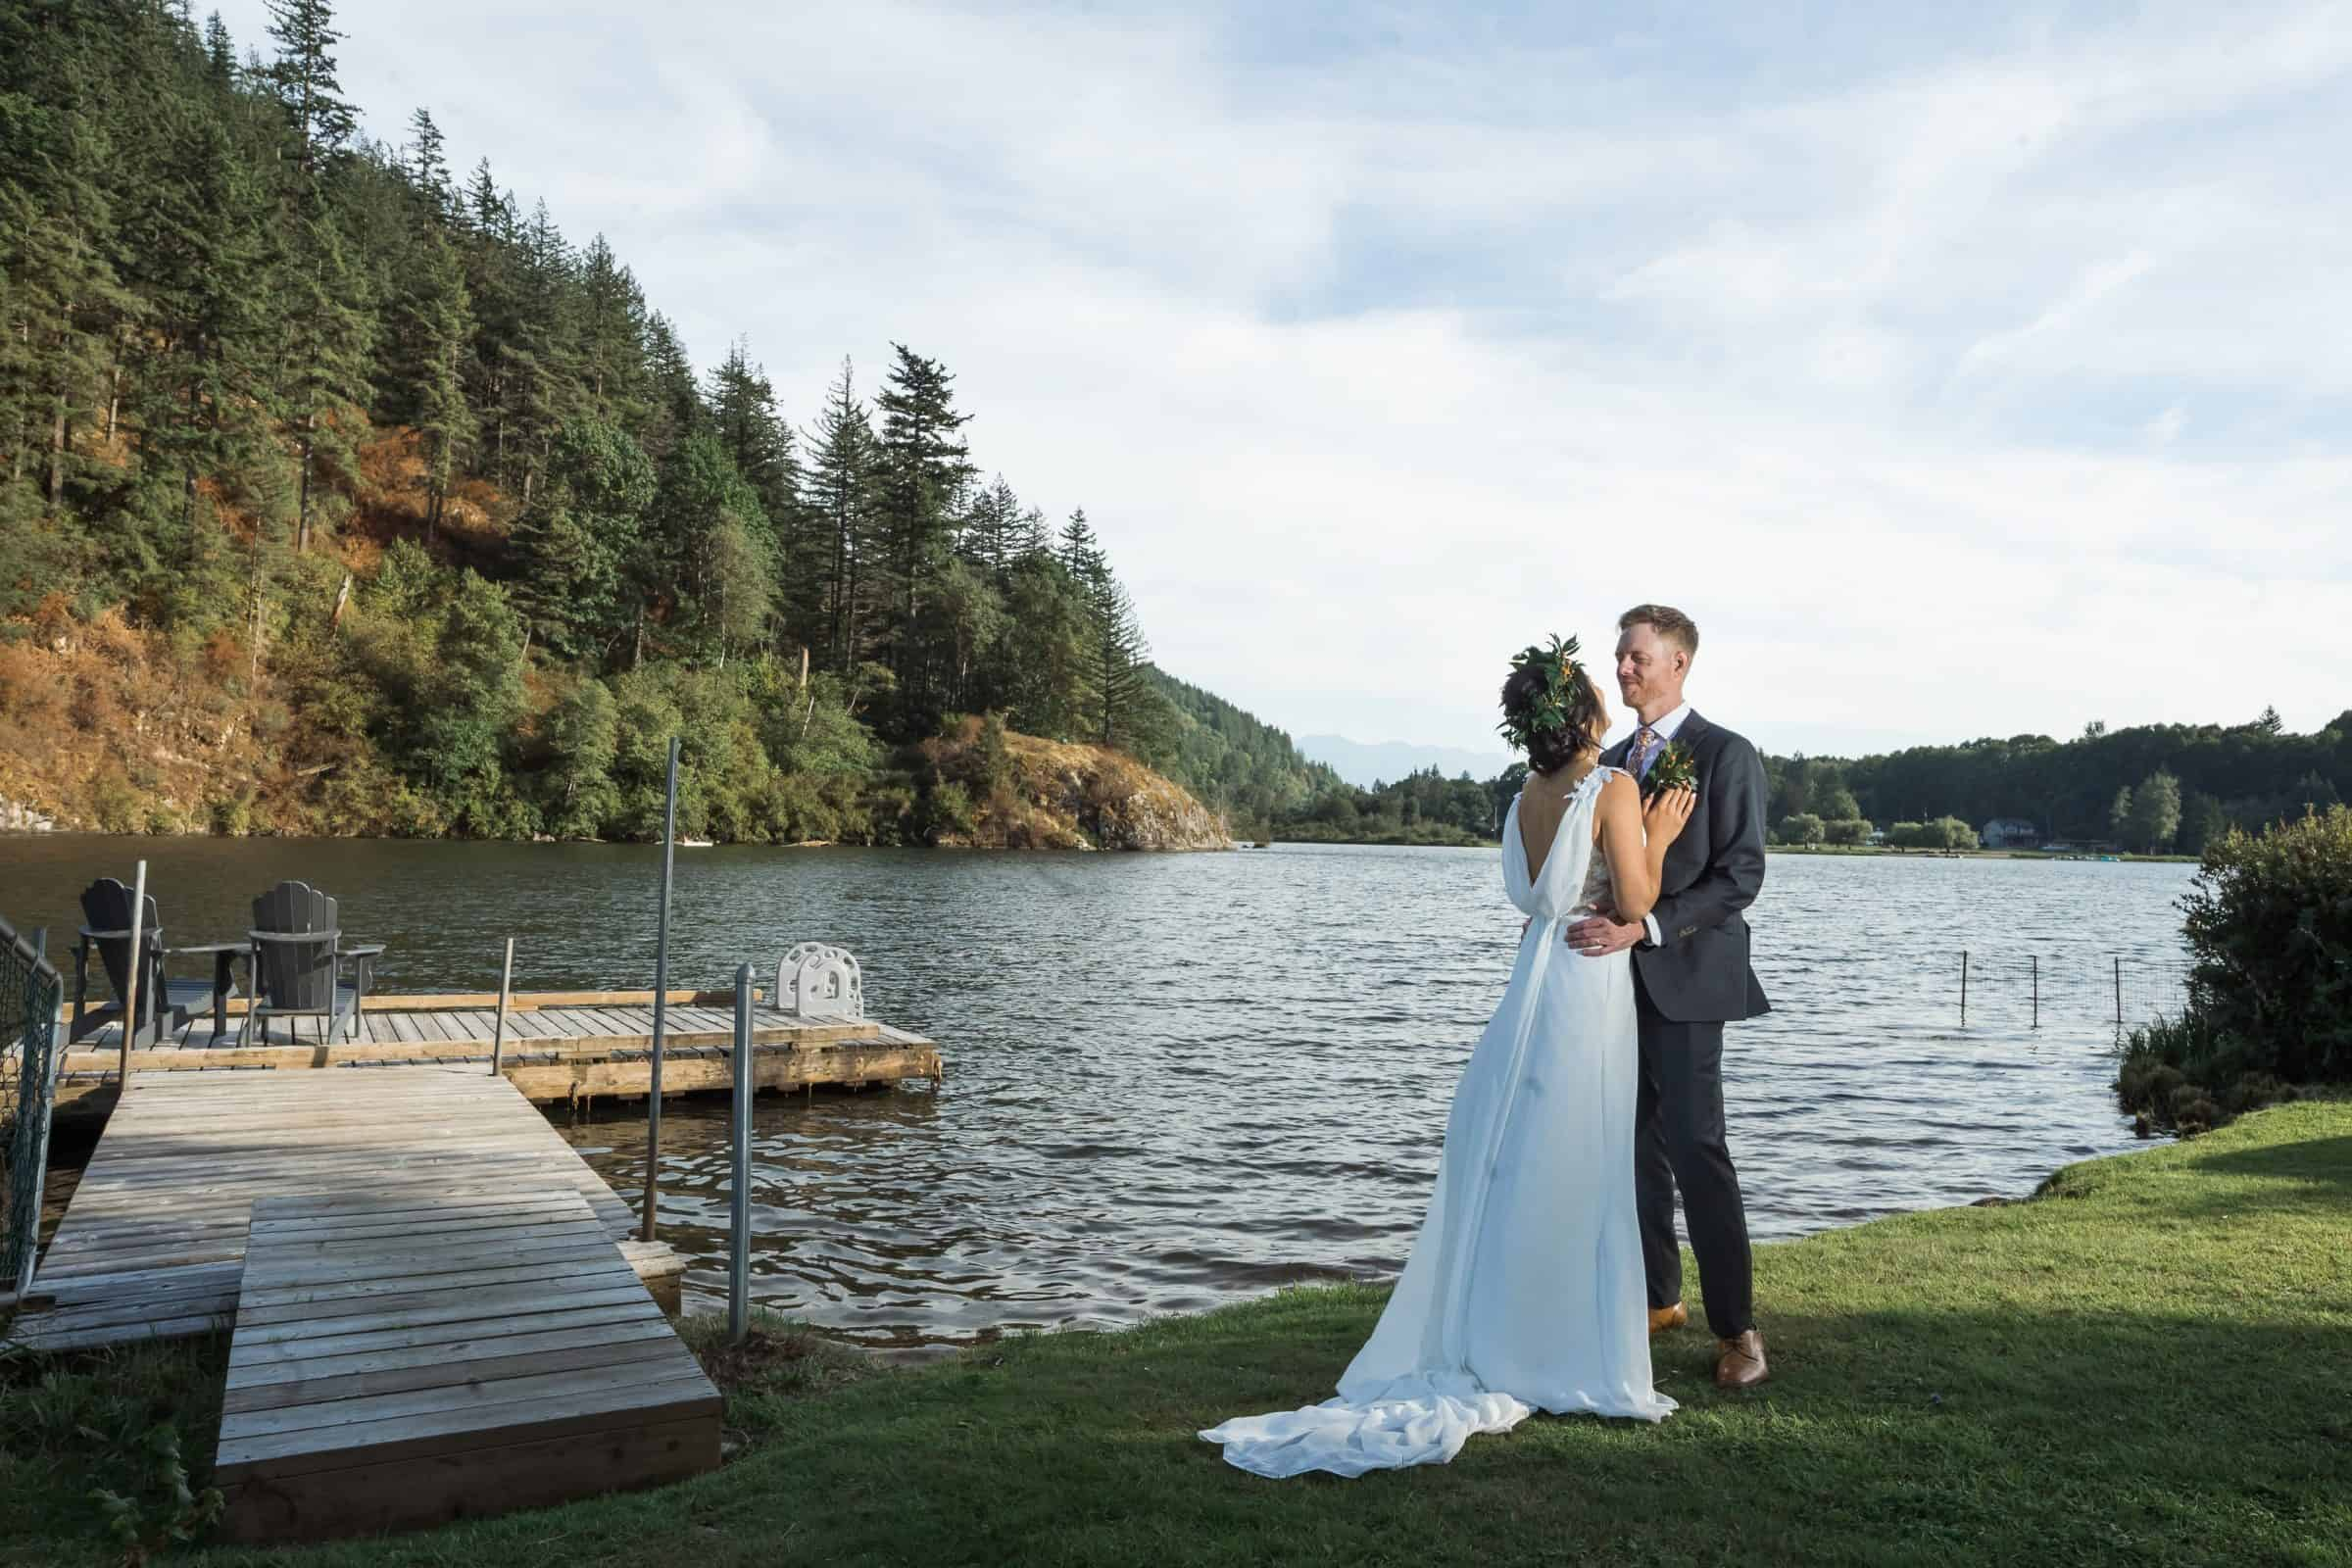 bride and groom standing beside a dock and lake at sunset